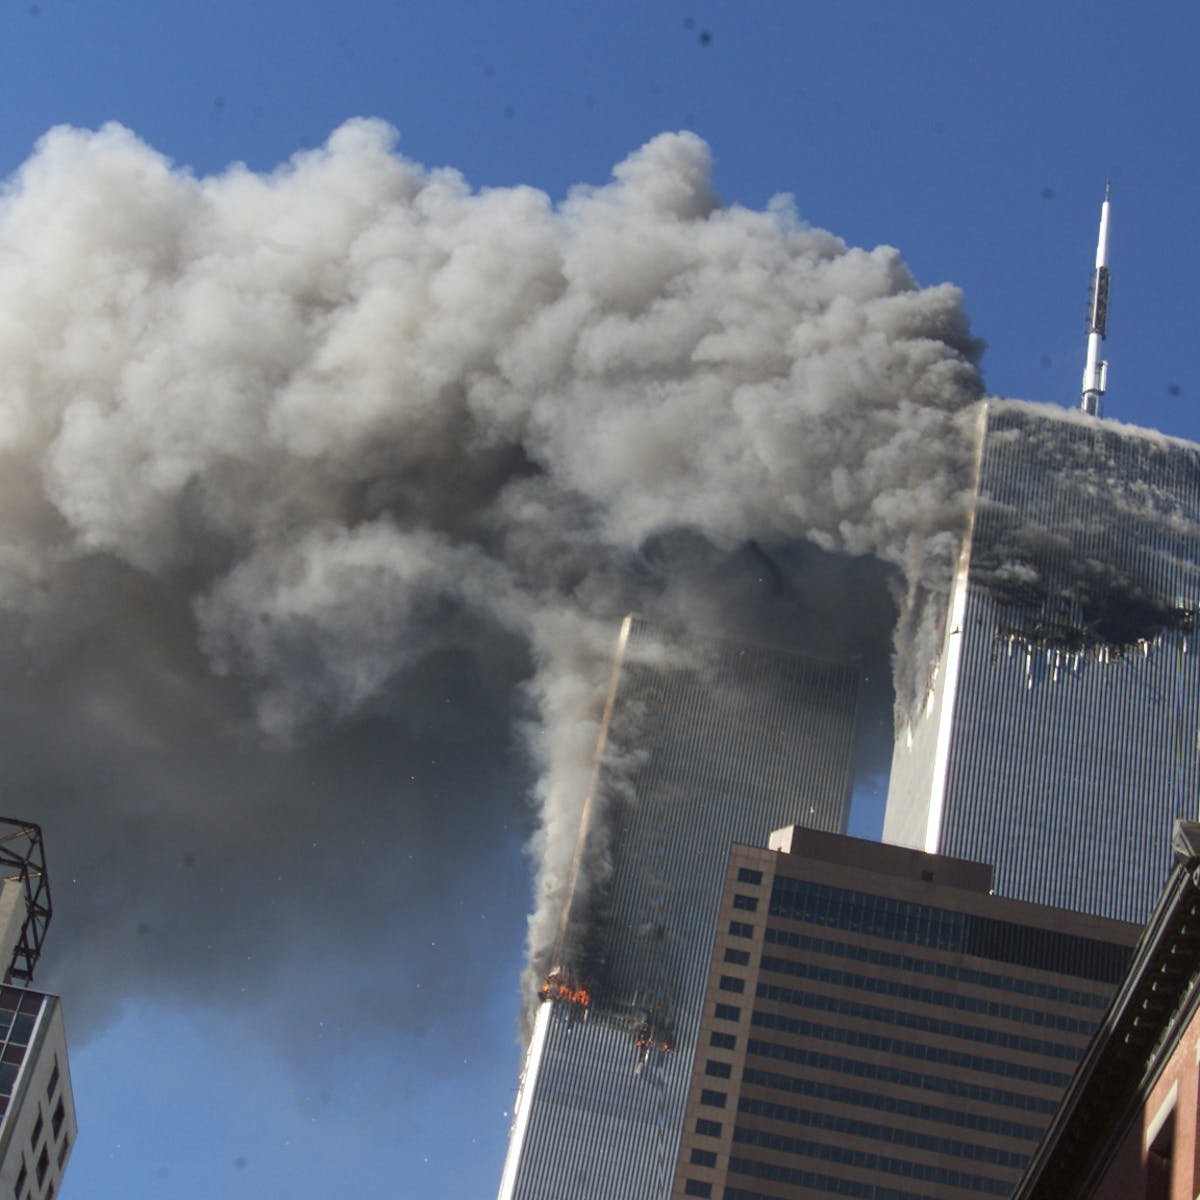 How the terrifying evacuations from the twin towers on 9/11 helped make today's skyscrapers safer